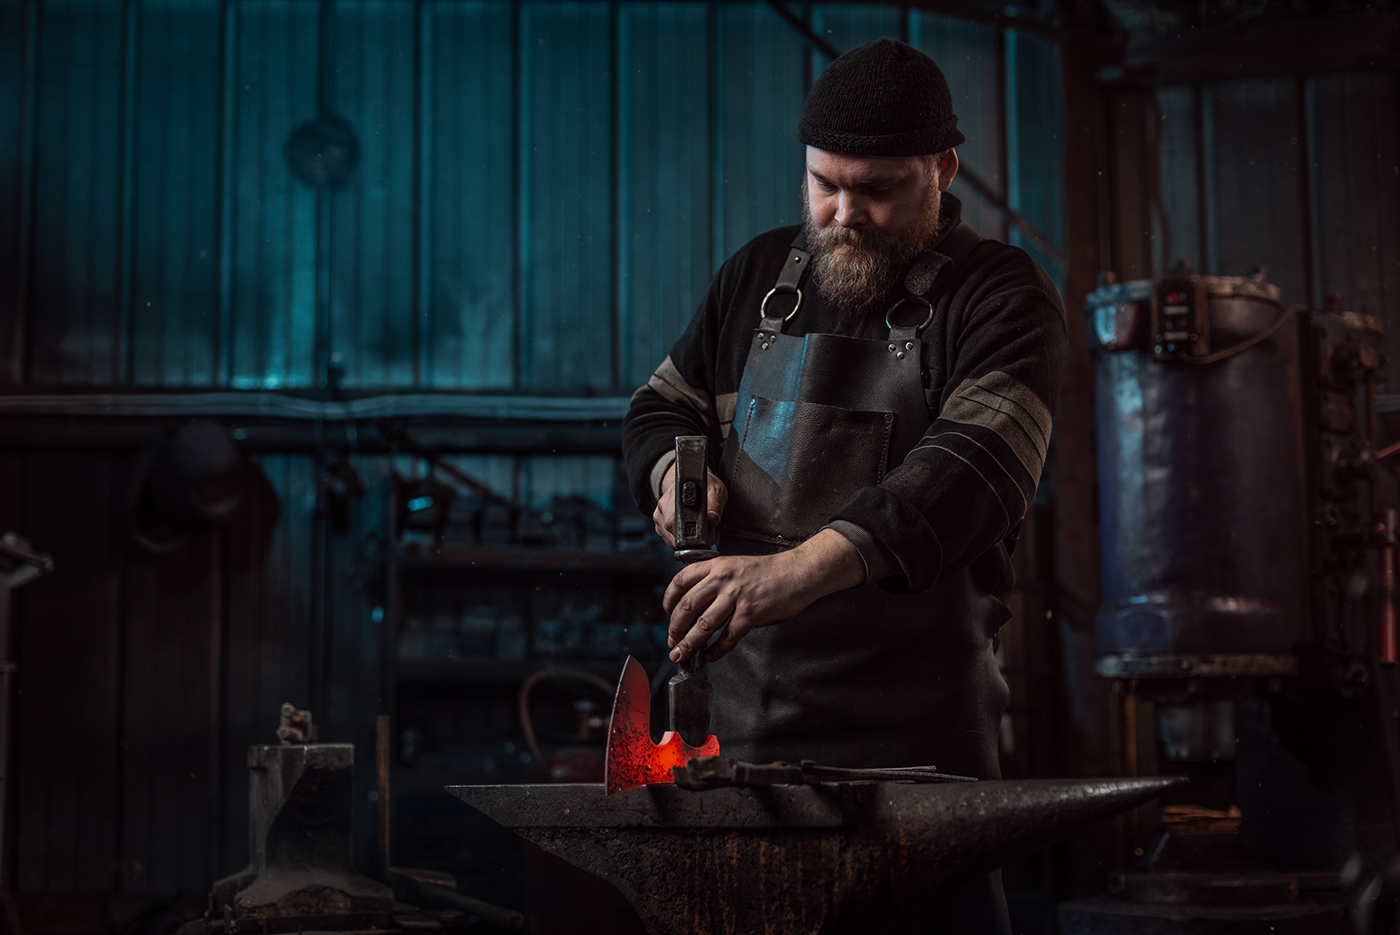 smithy iron fire man Production portrait hands leather manufacture axe